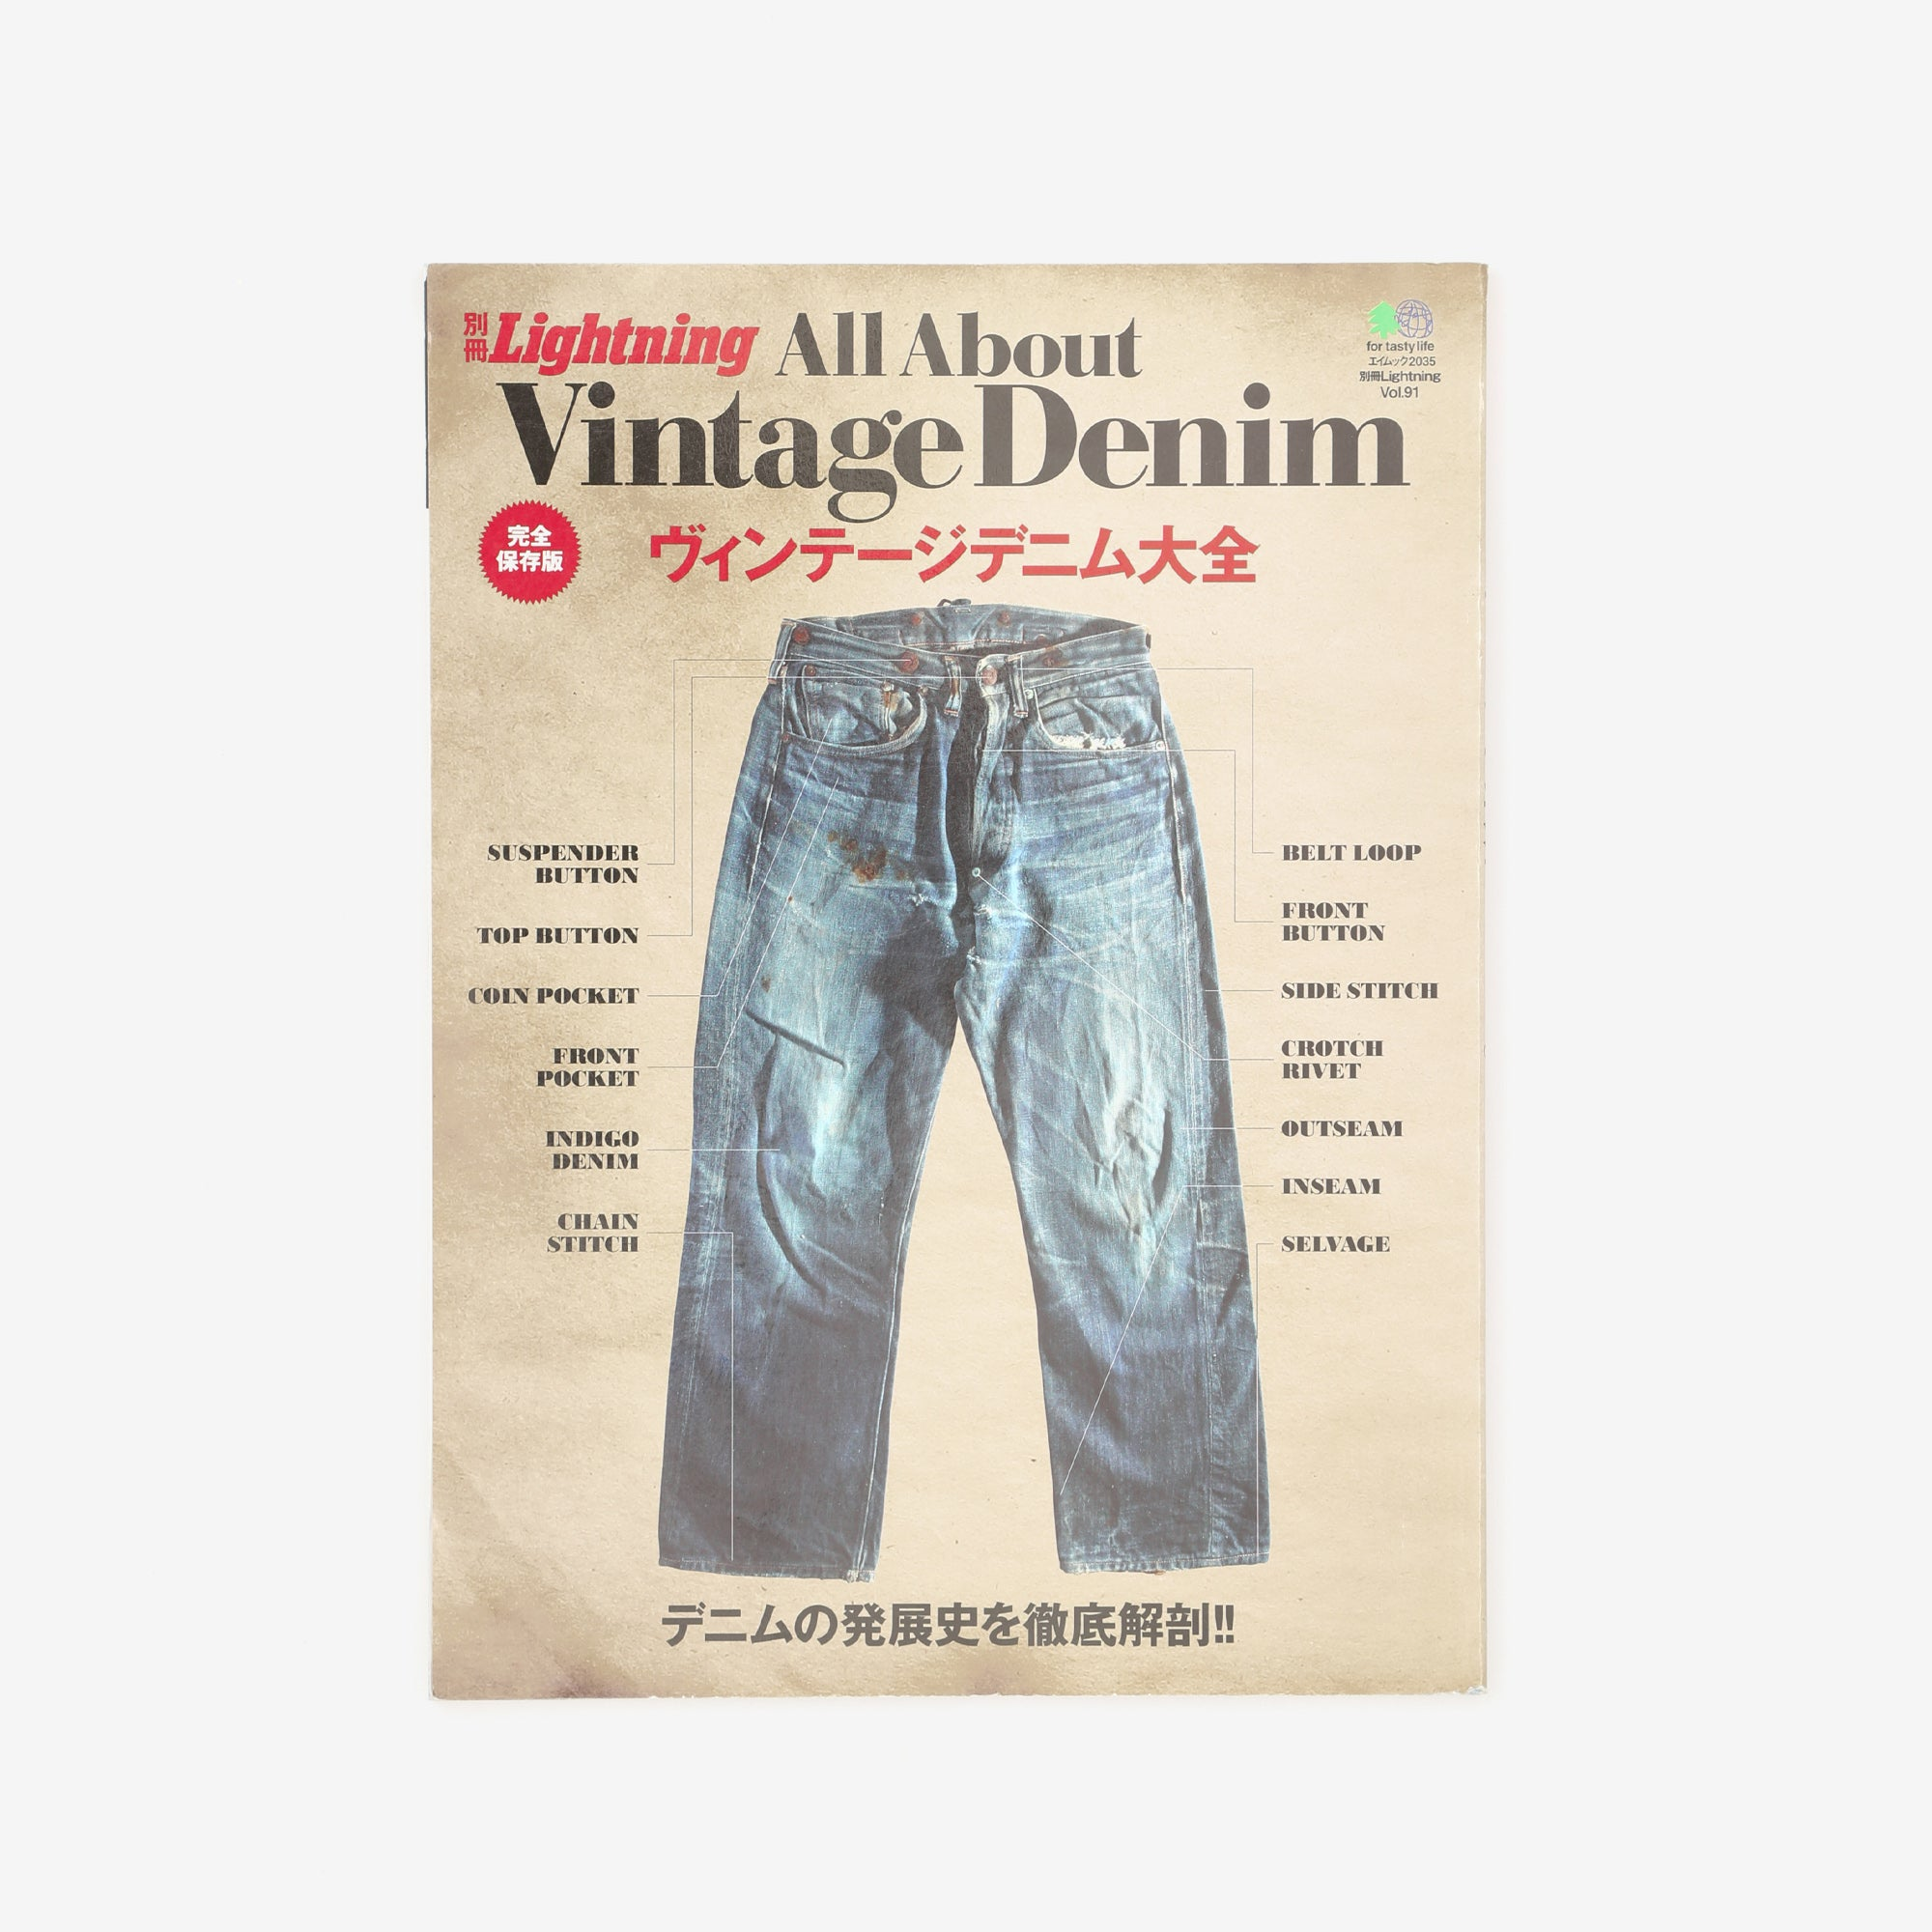 All About Vintage Denim